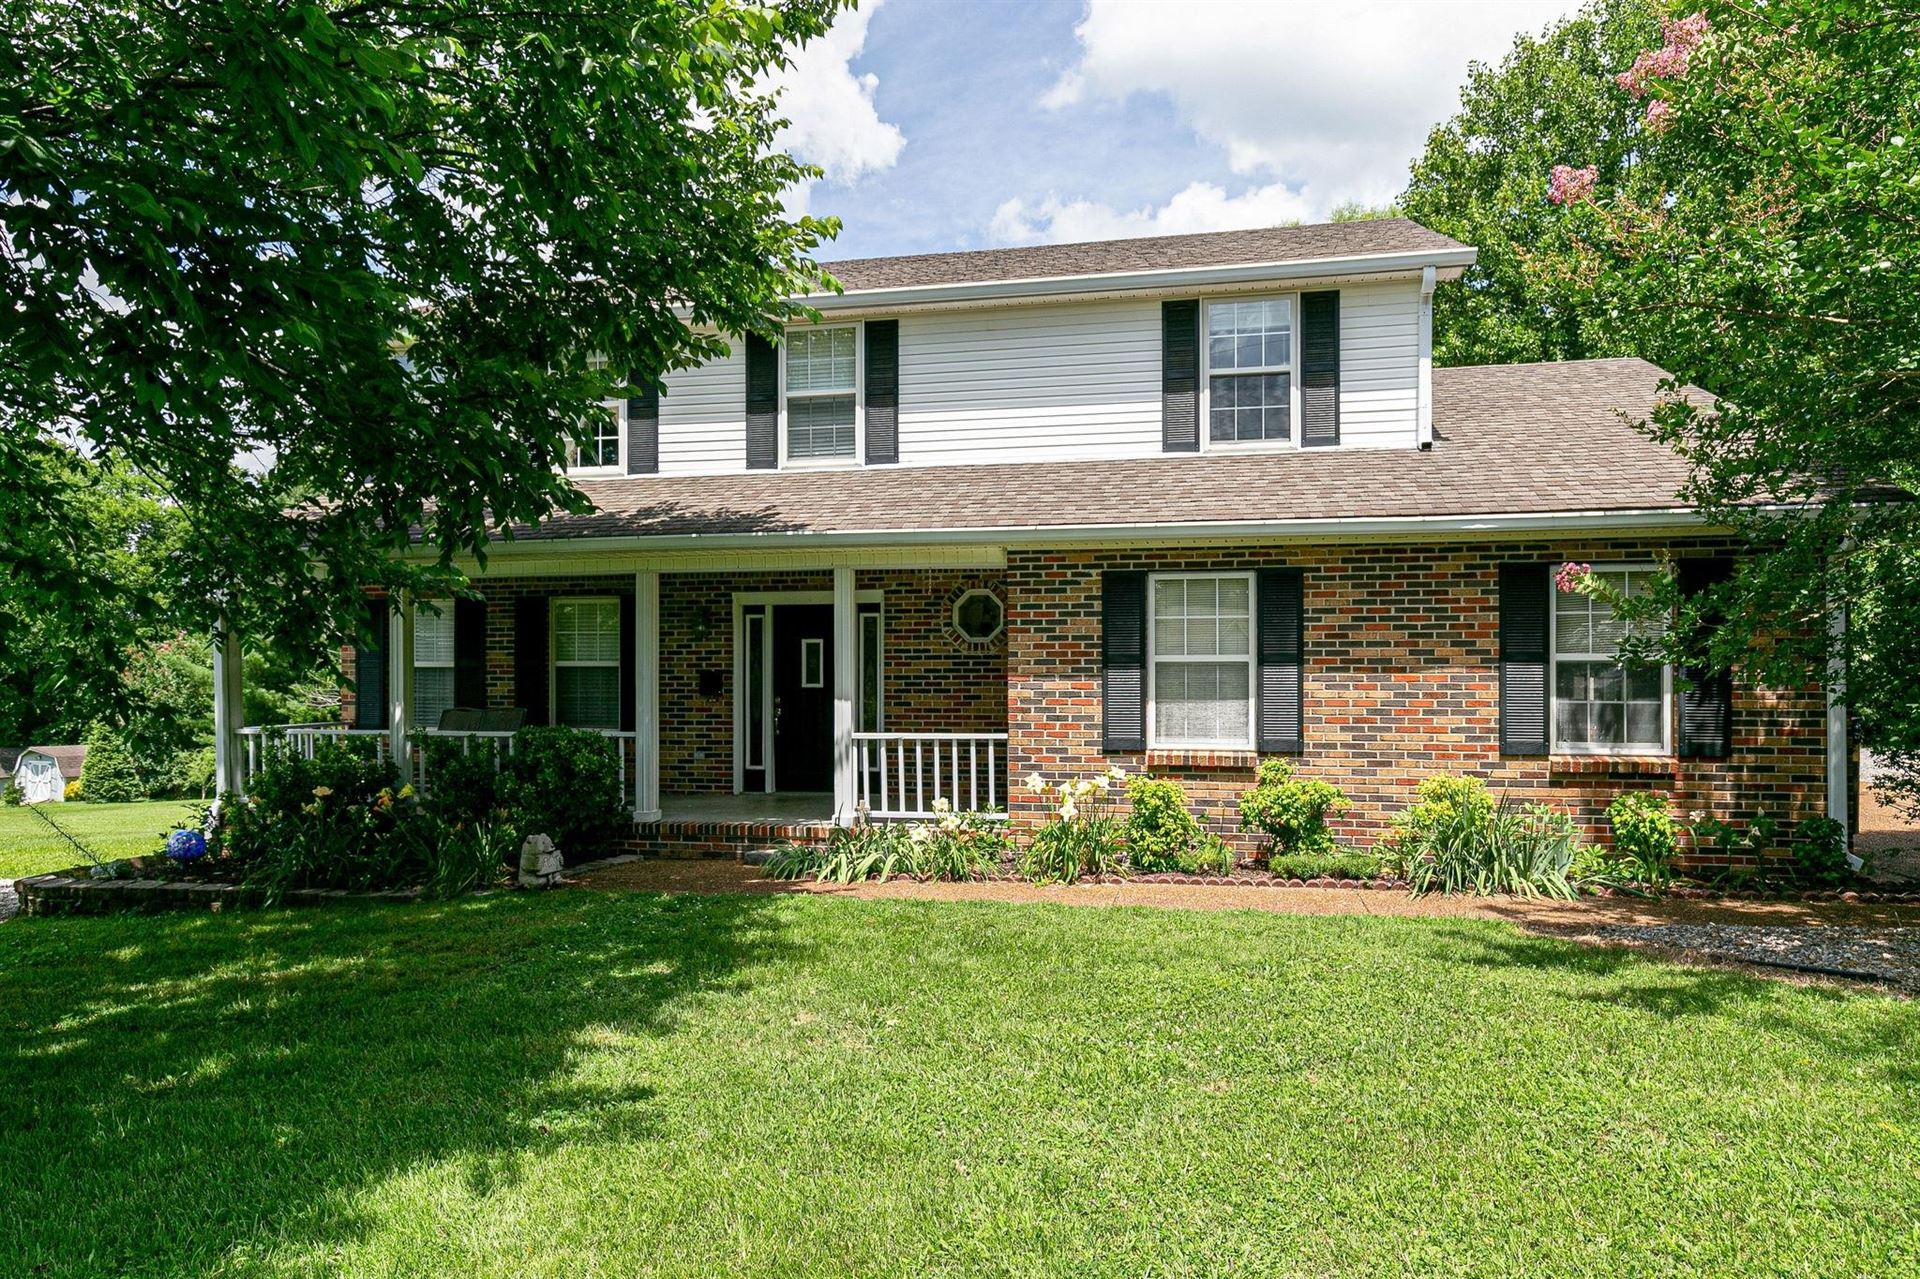 Photo of 95 Oak Valley Dr, Spring Hill, TN 37174 (MLS # 2229711)